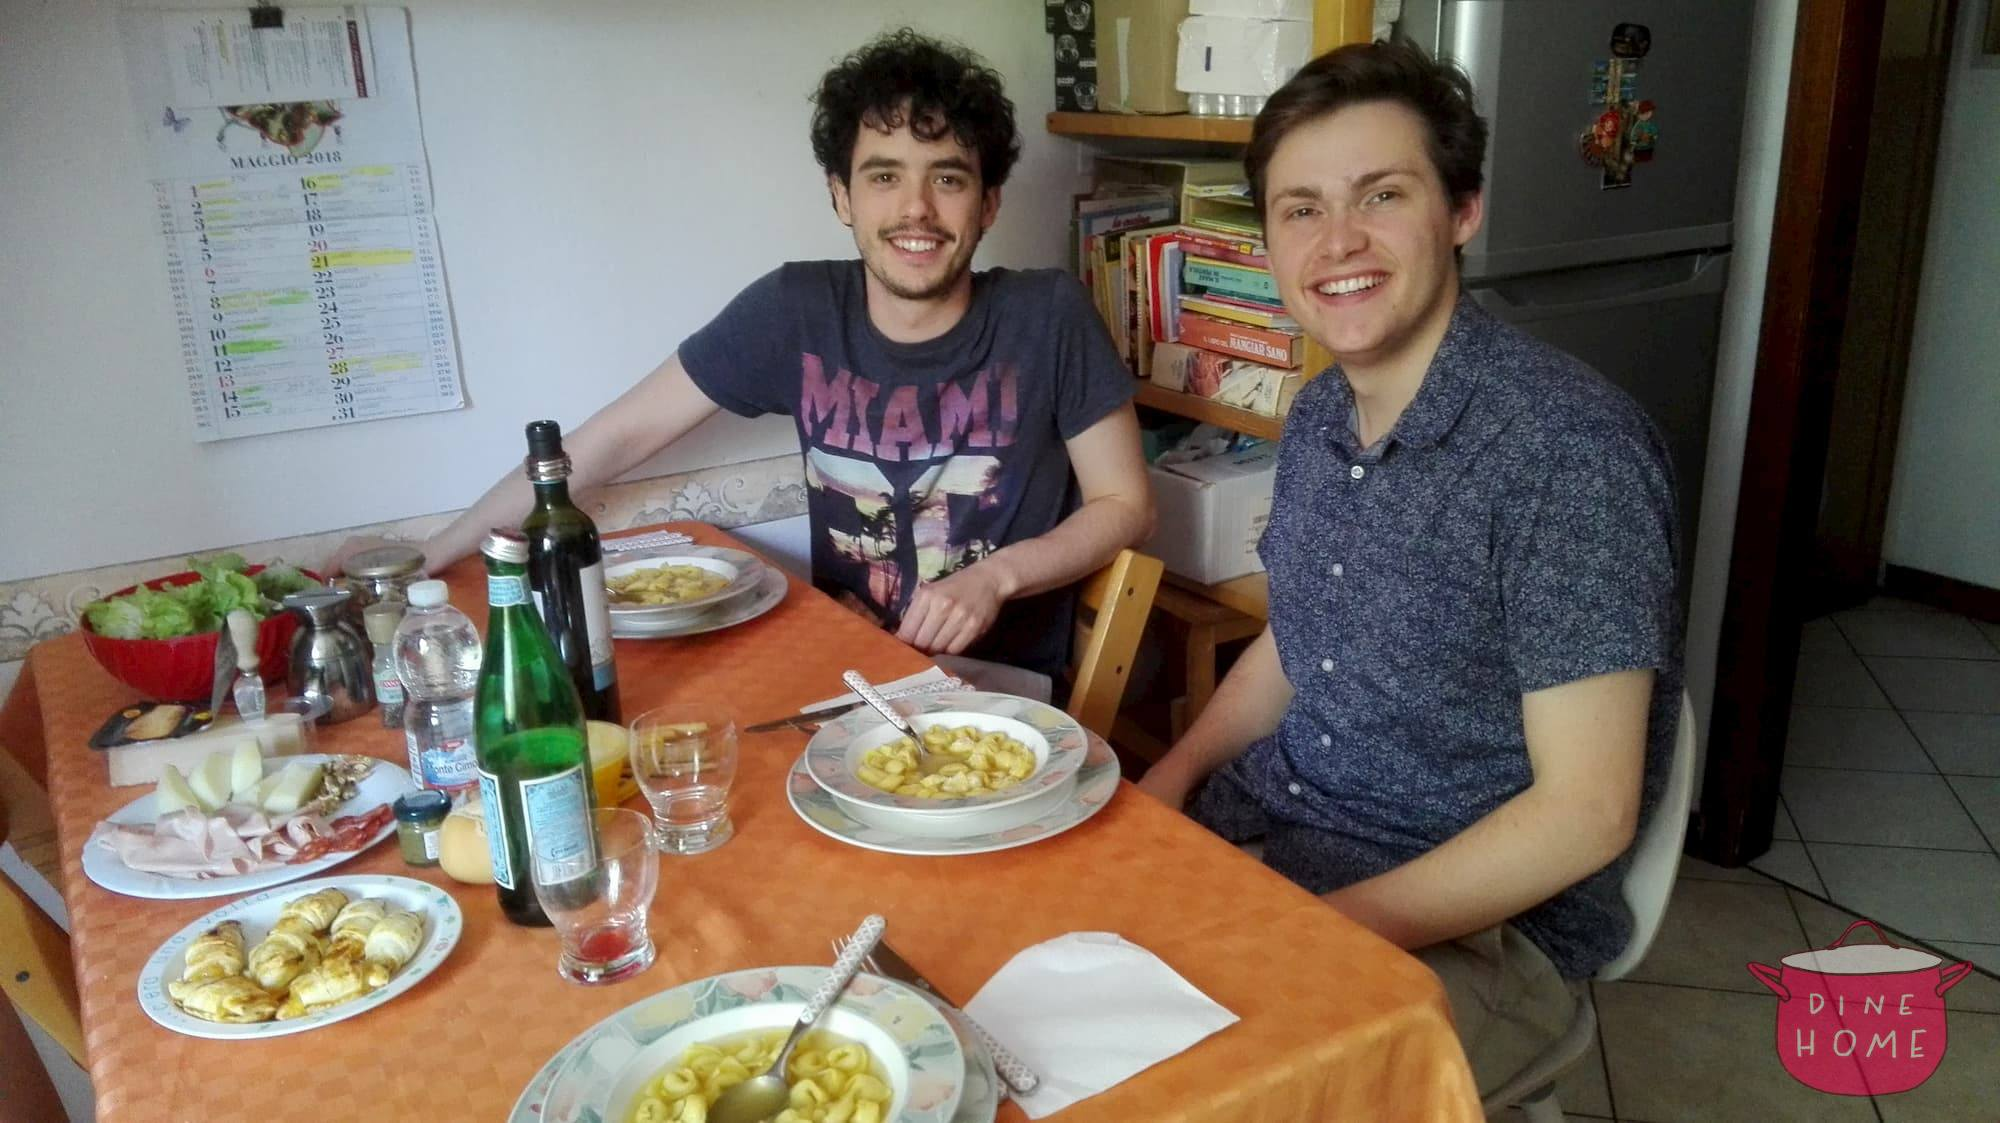 Simon, a U.S. student, having dinner with his Dinehome family.